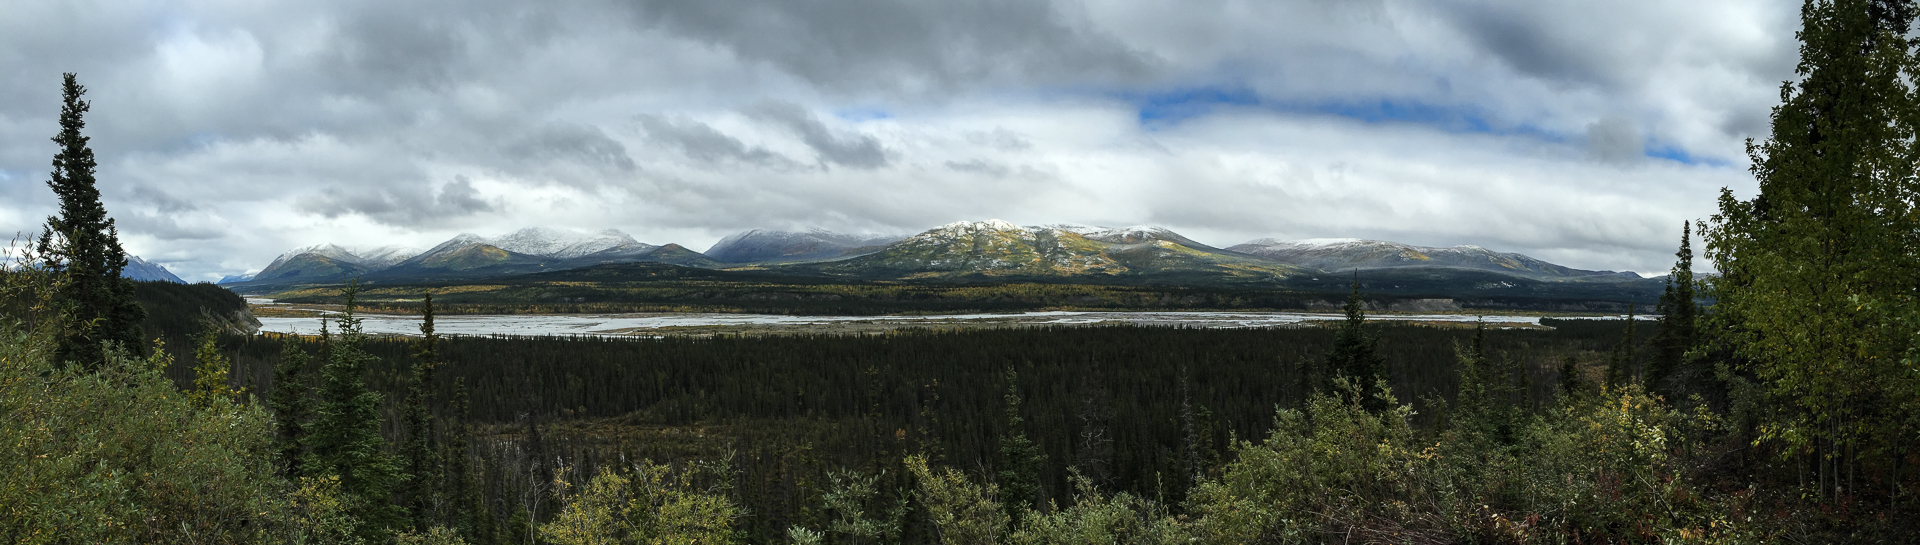 Panoramic view of the Kluane River viewpoint.